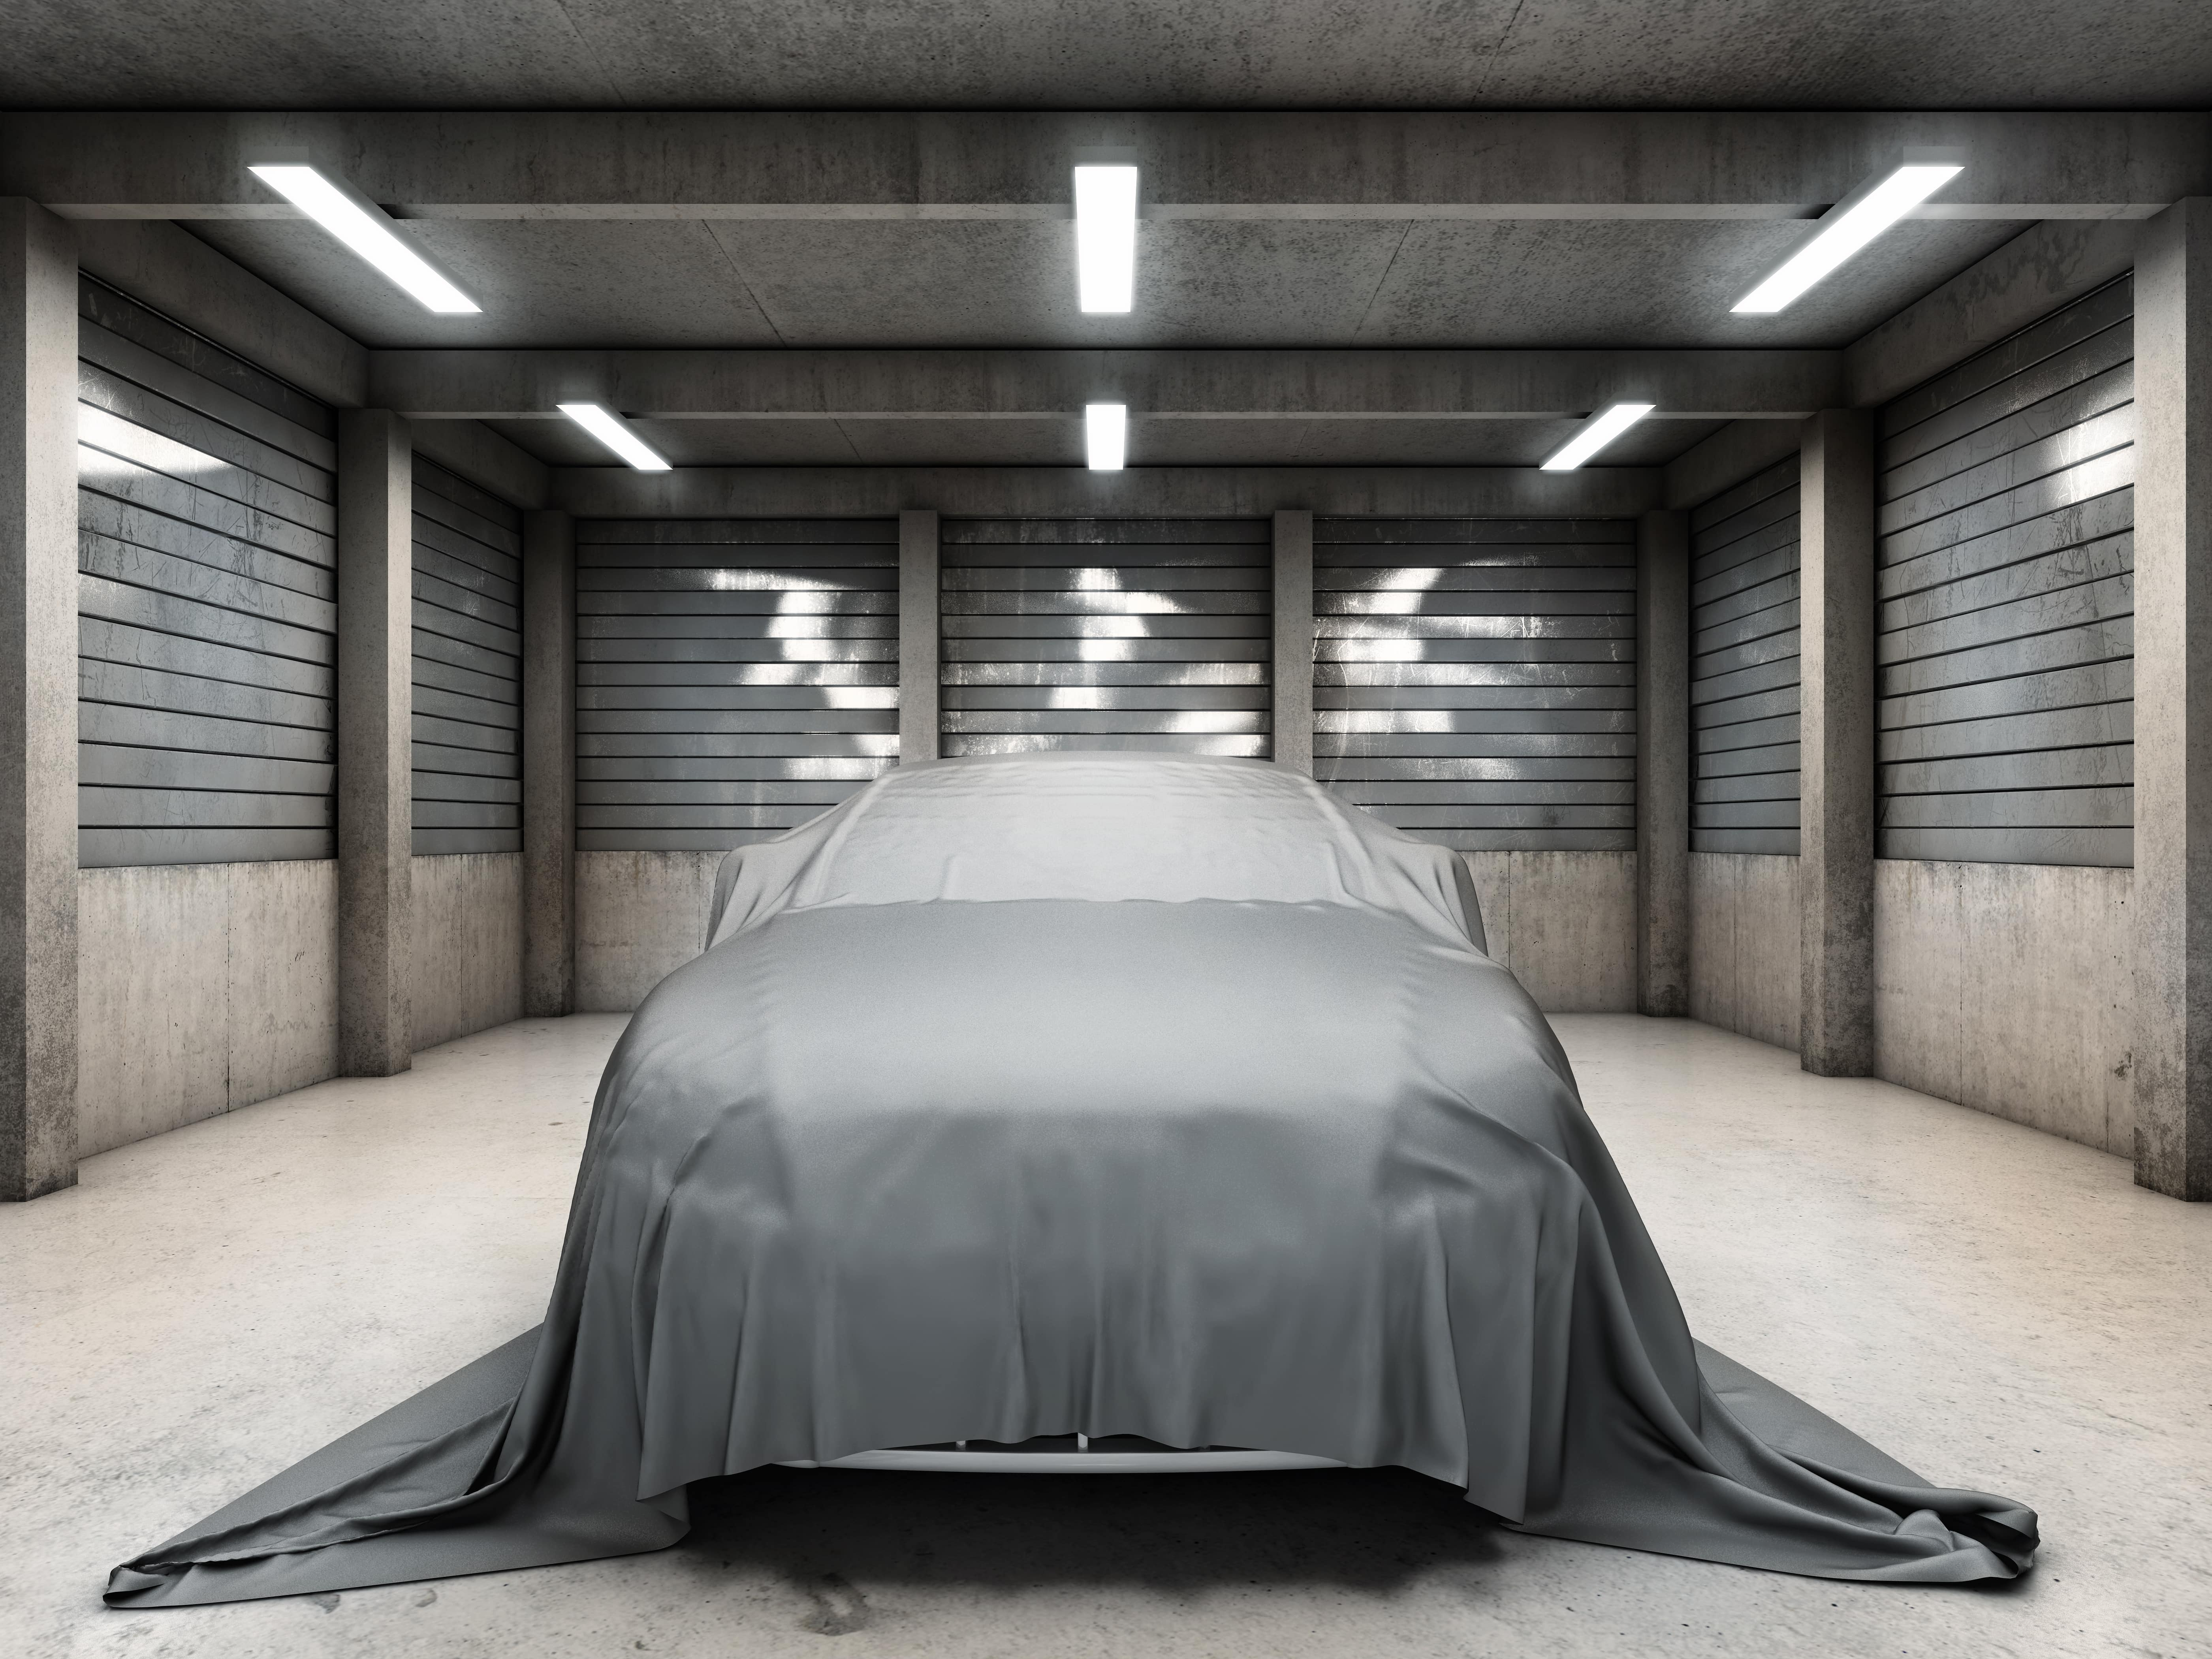 old-dirty-garage-car-covered-cloth